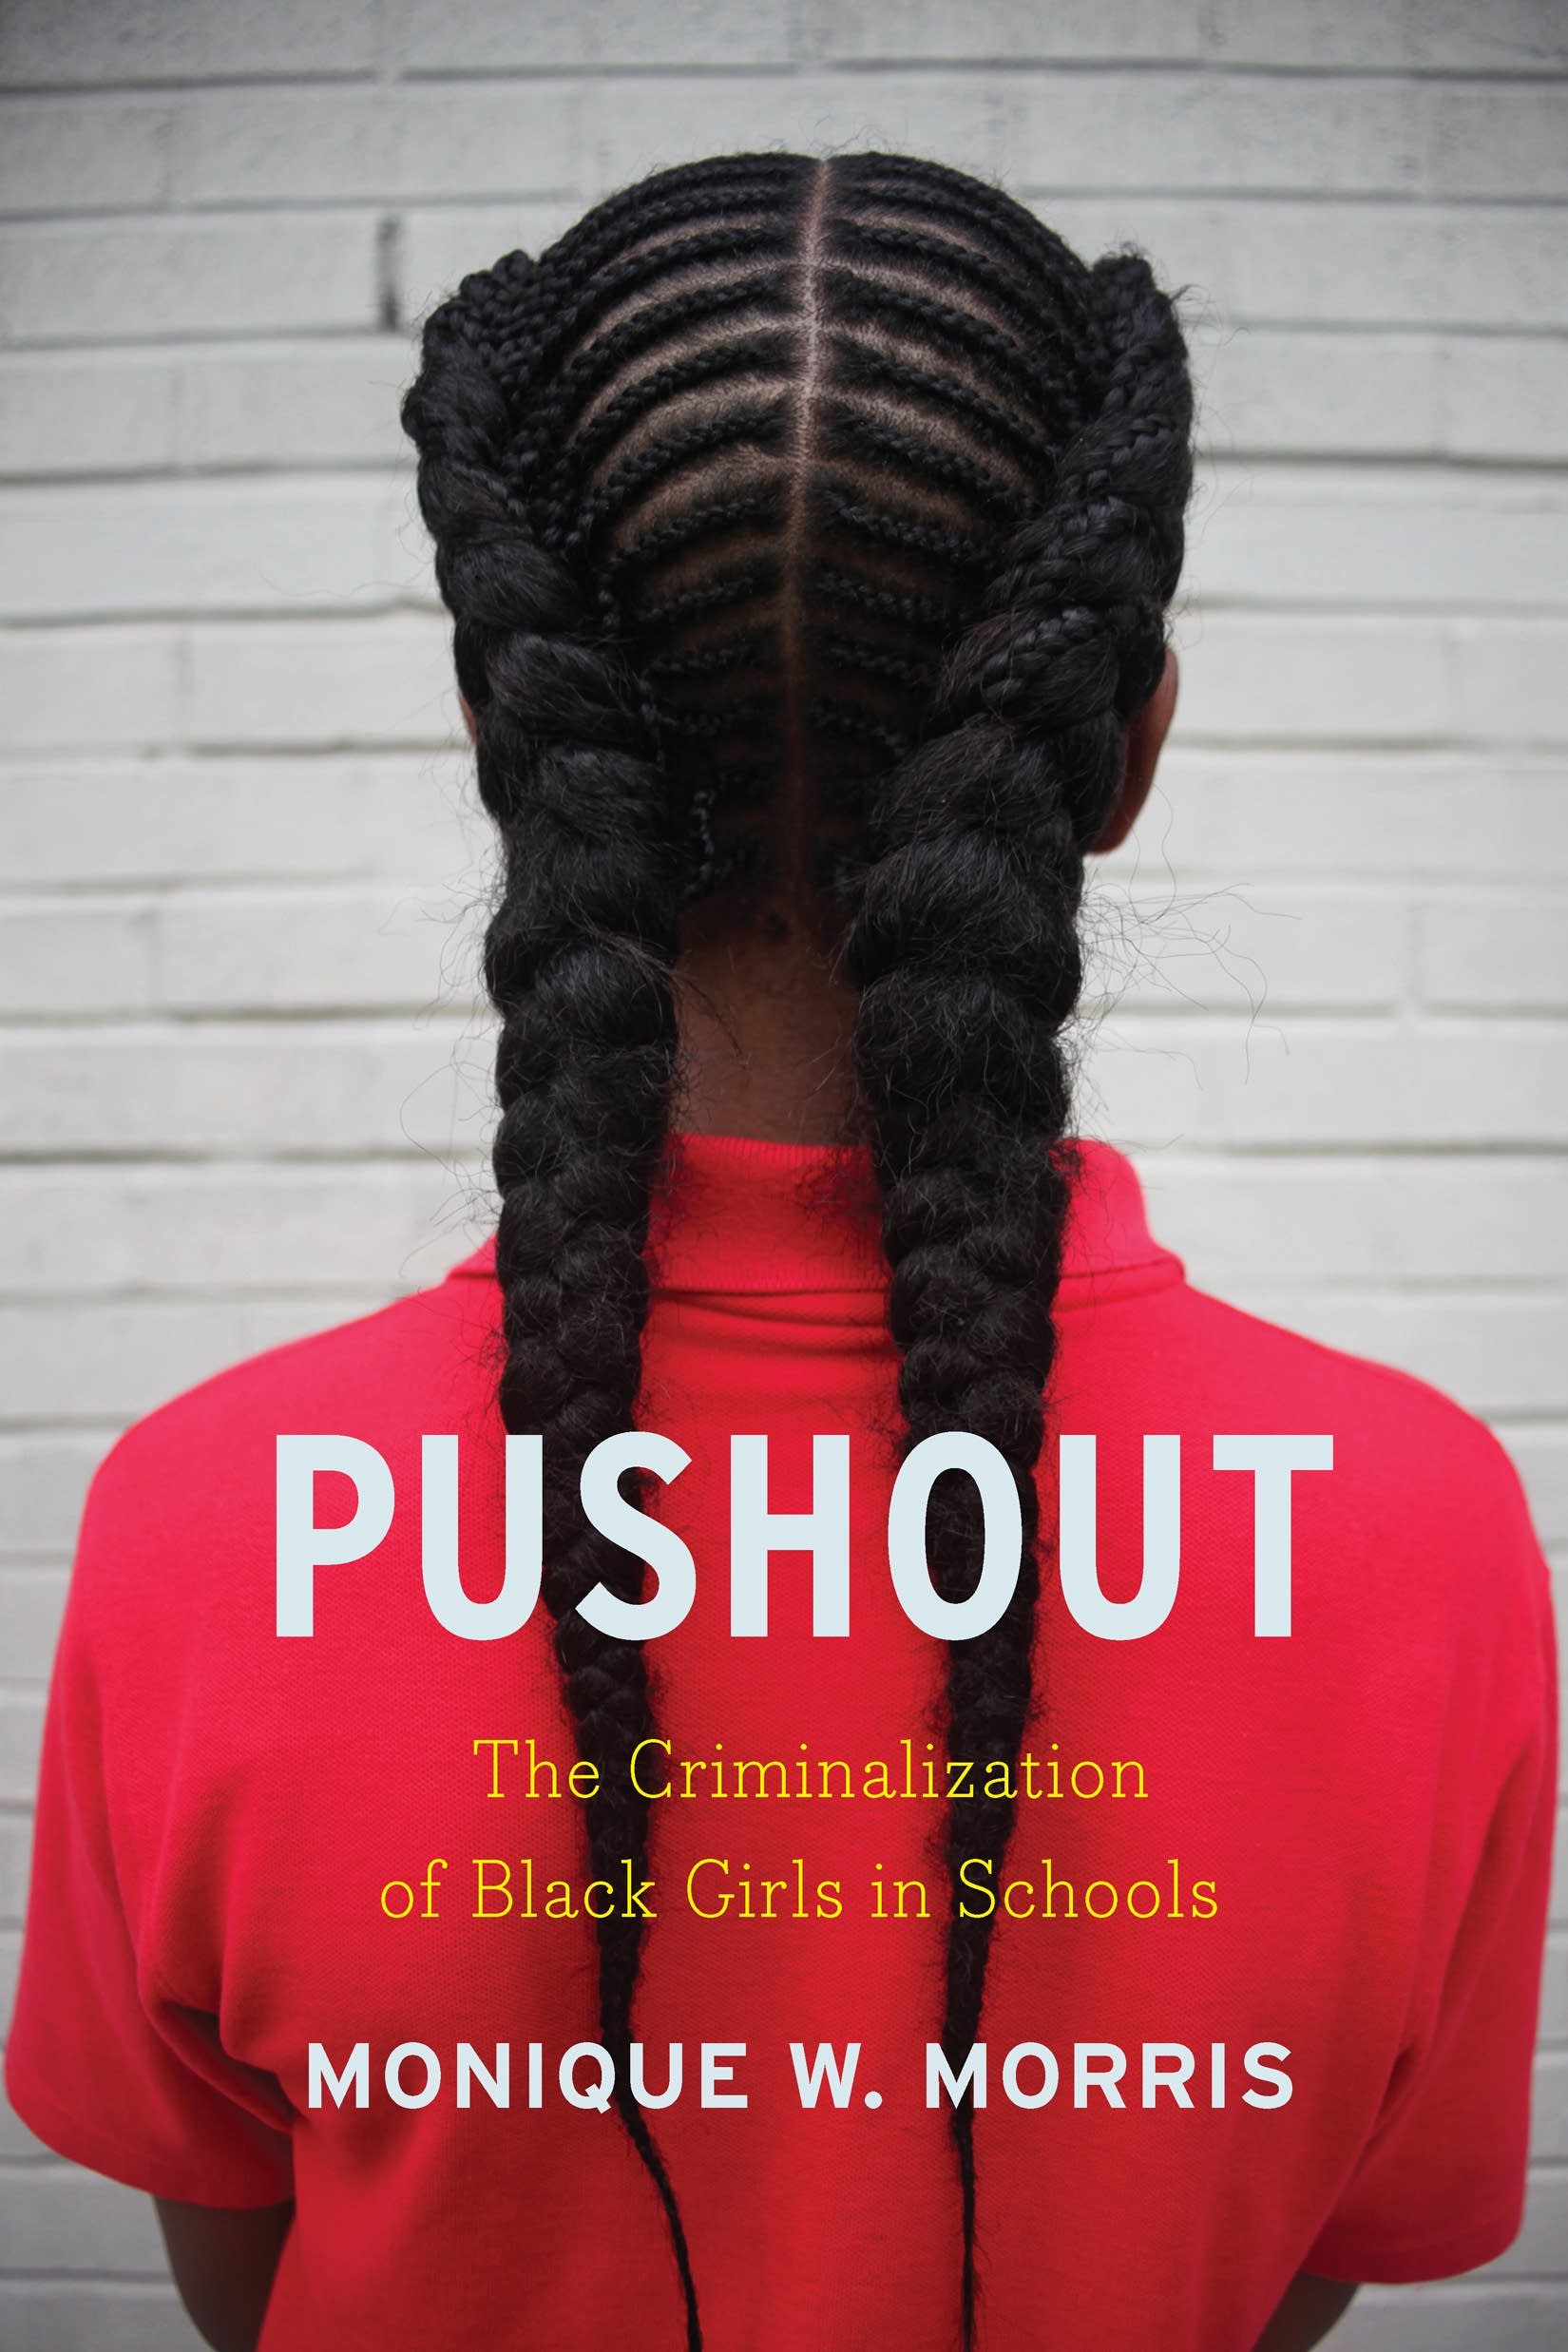 'Pushout: The Criminalization of Black Girls in Schools' by Monique Morris